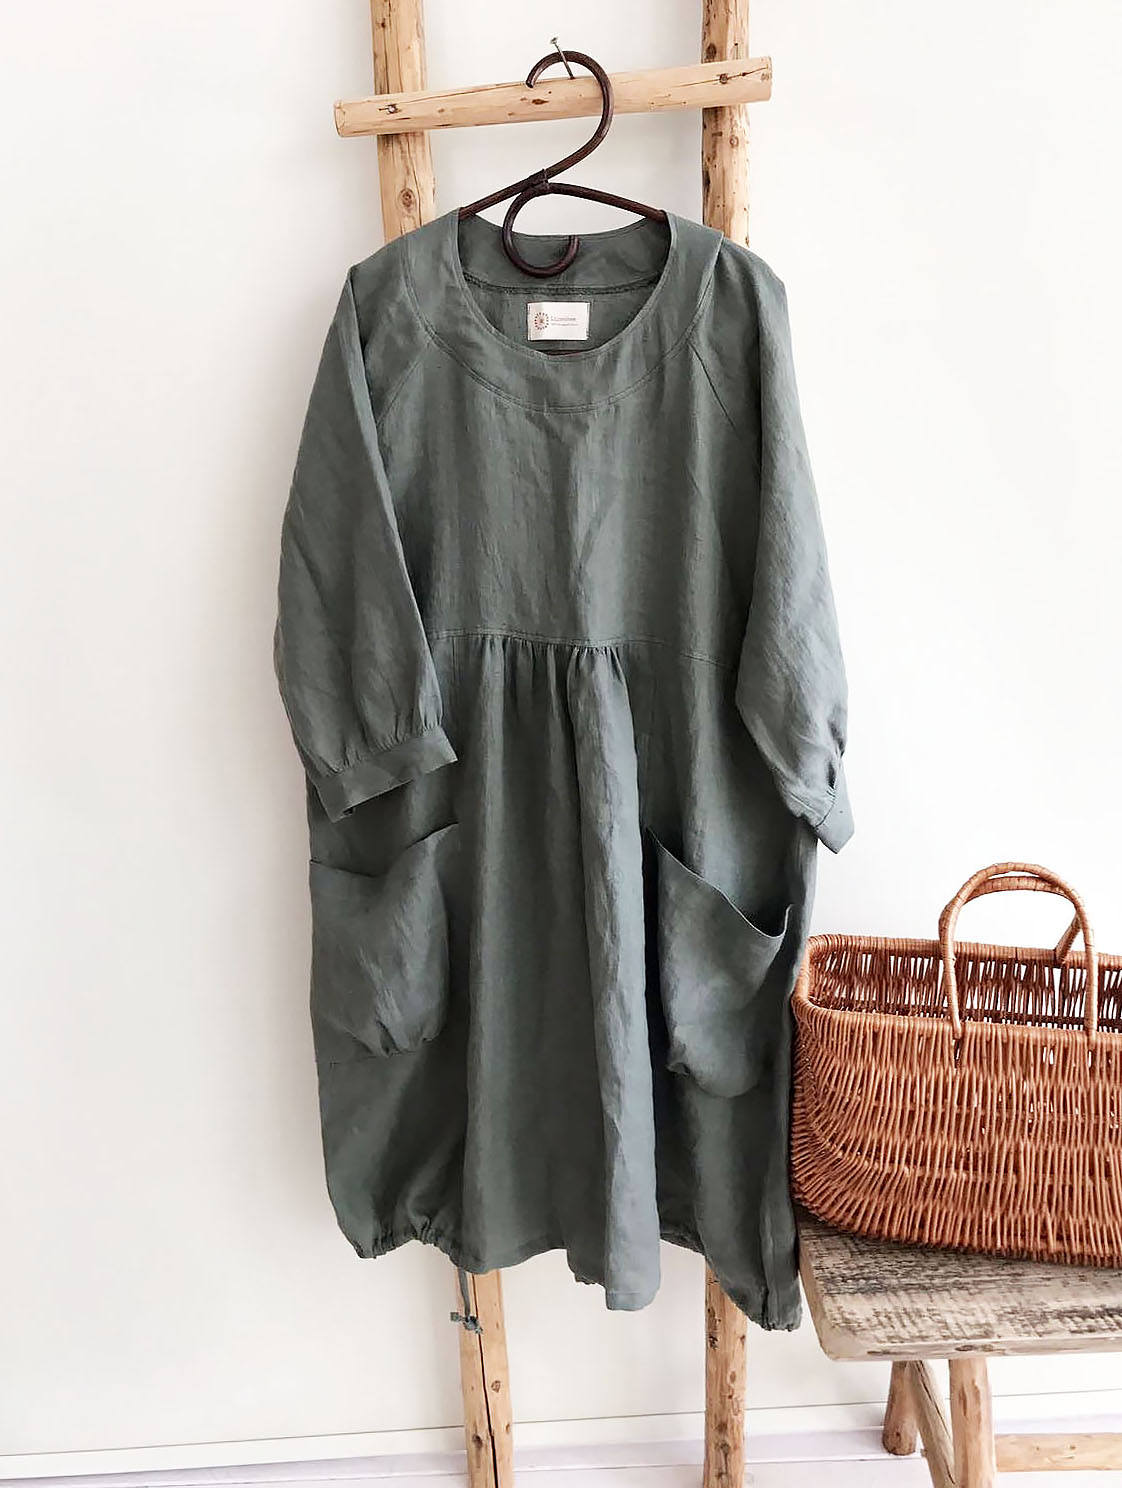 Loose Linen Dress, Linen Tunic Dress, Dress for women, Plus size Dress, Plus size tunic dress, linen dress for women Black Tunic Linen Dress